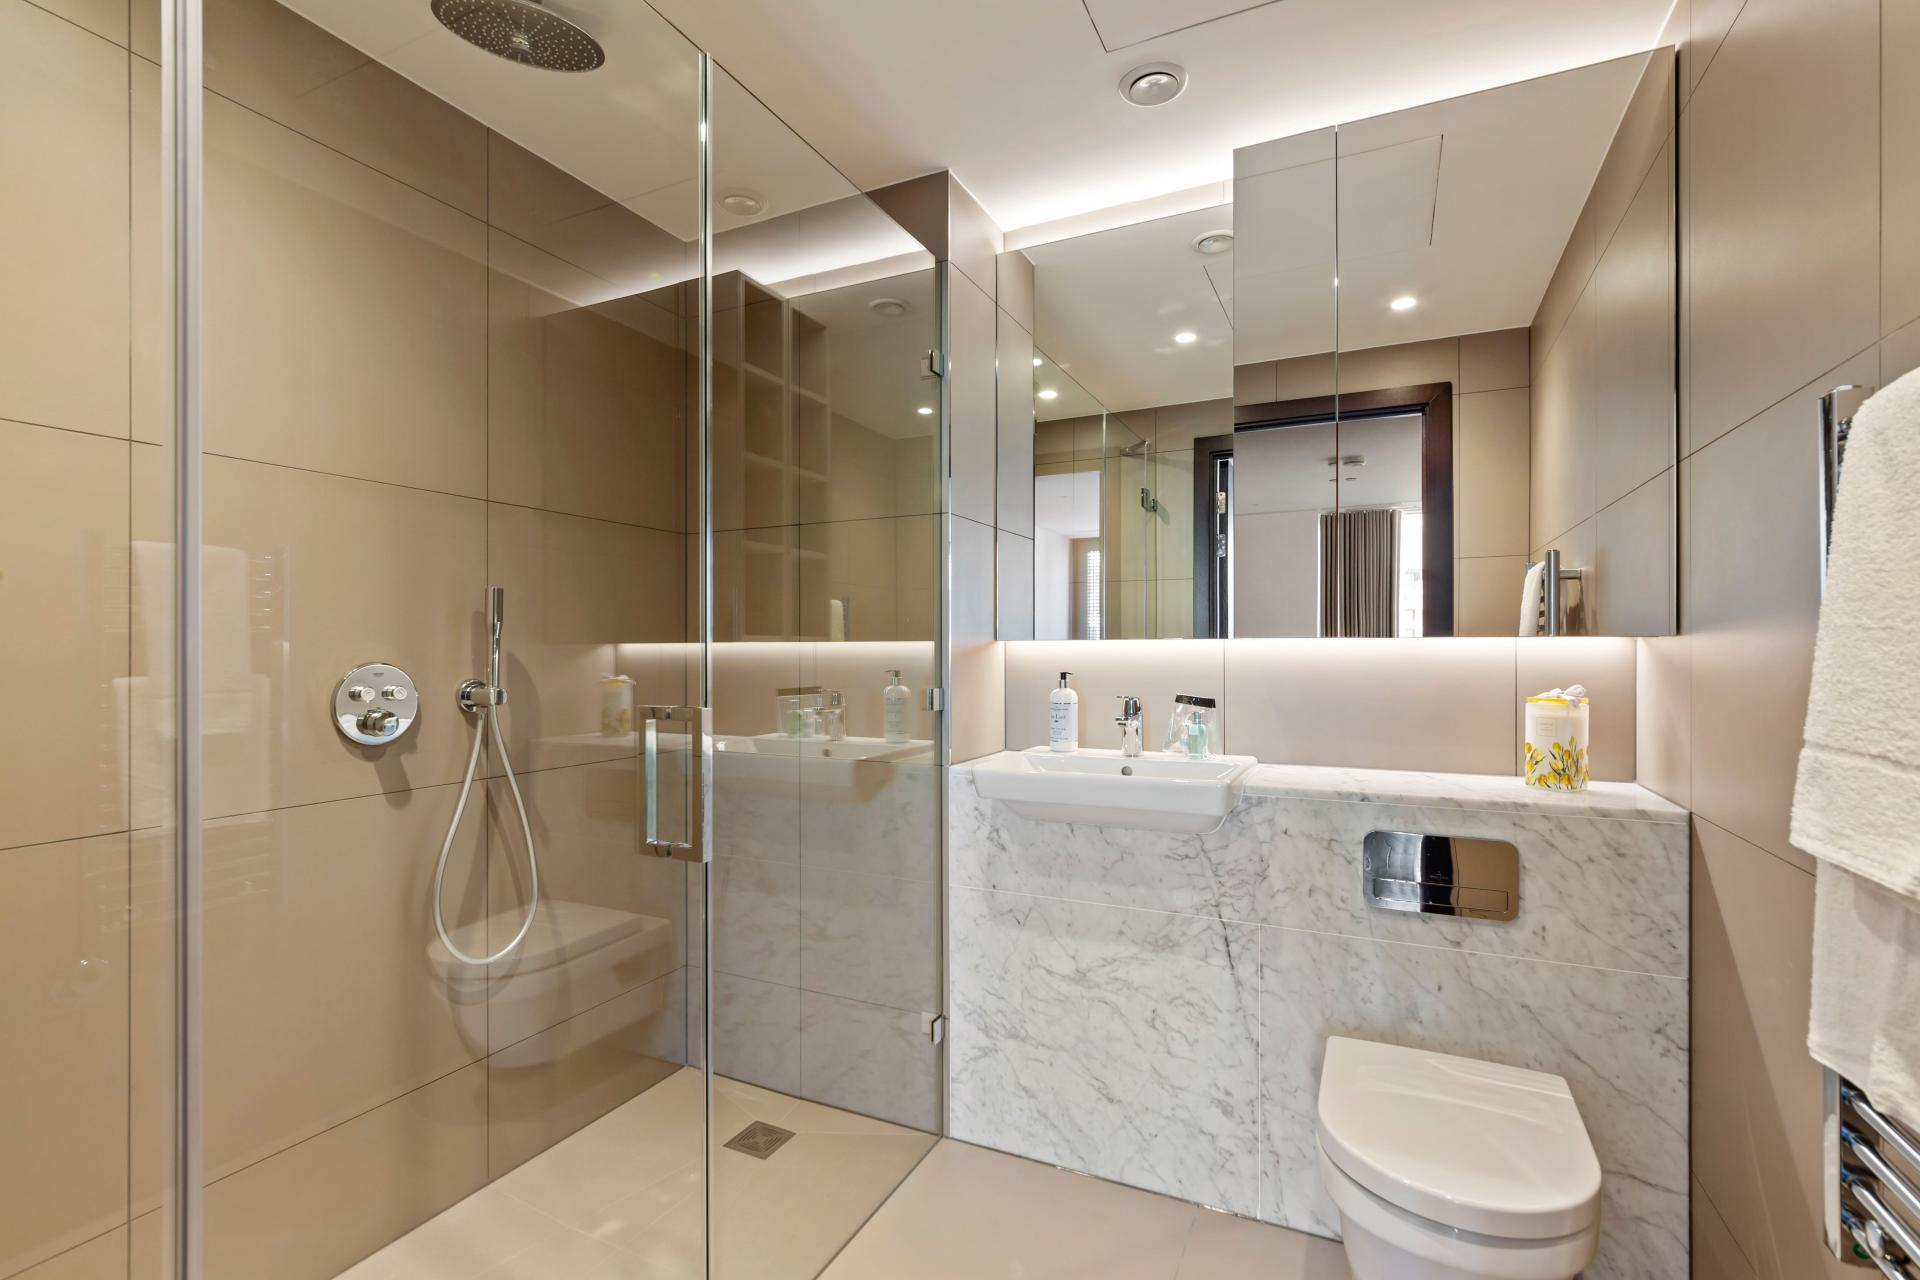 Bathroom at The Residence Tower Hill, Whitechapel, London - Citybase Apartments